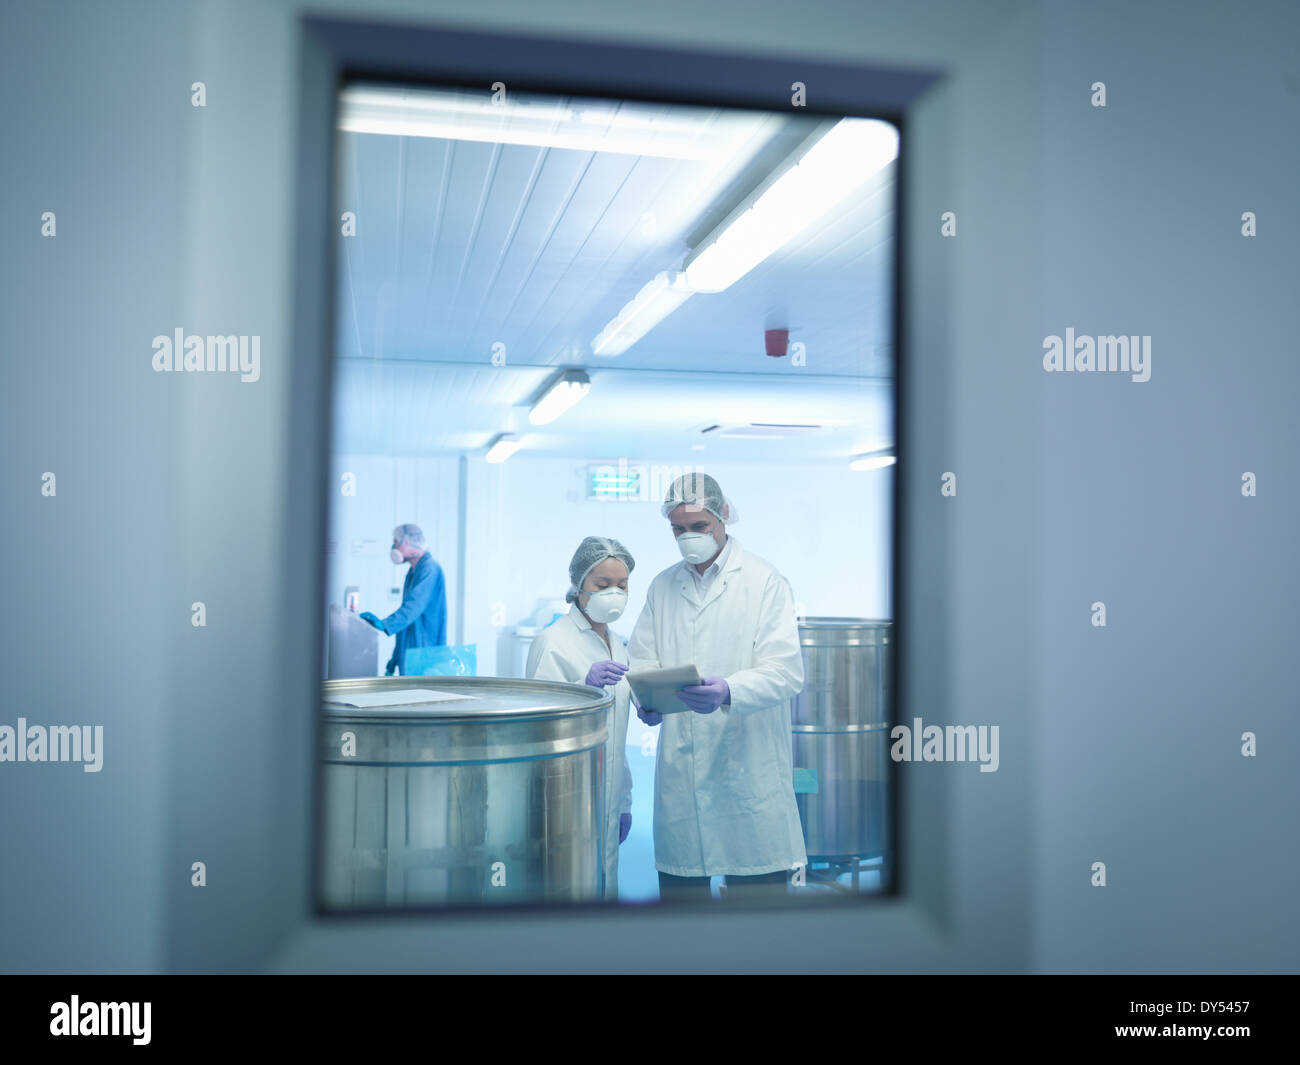 Workers using digital tablet in pharmaceutical factory Photo Stock